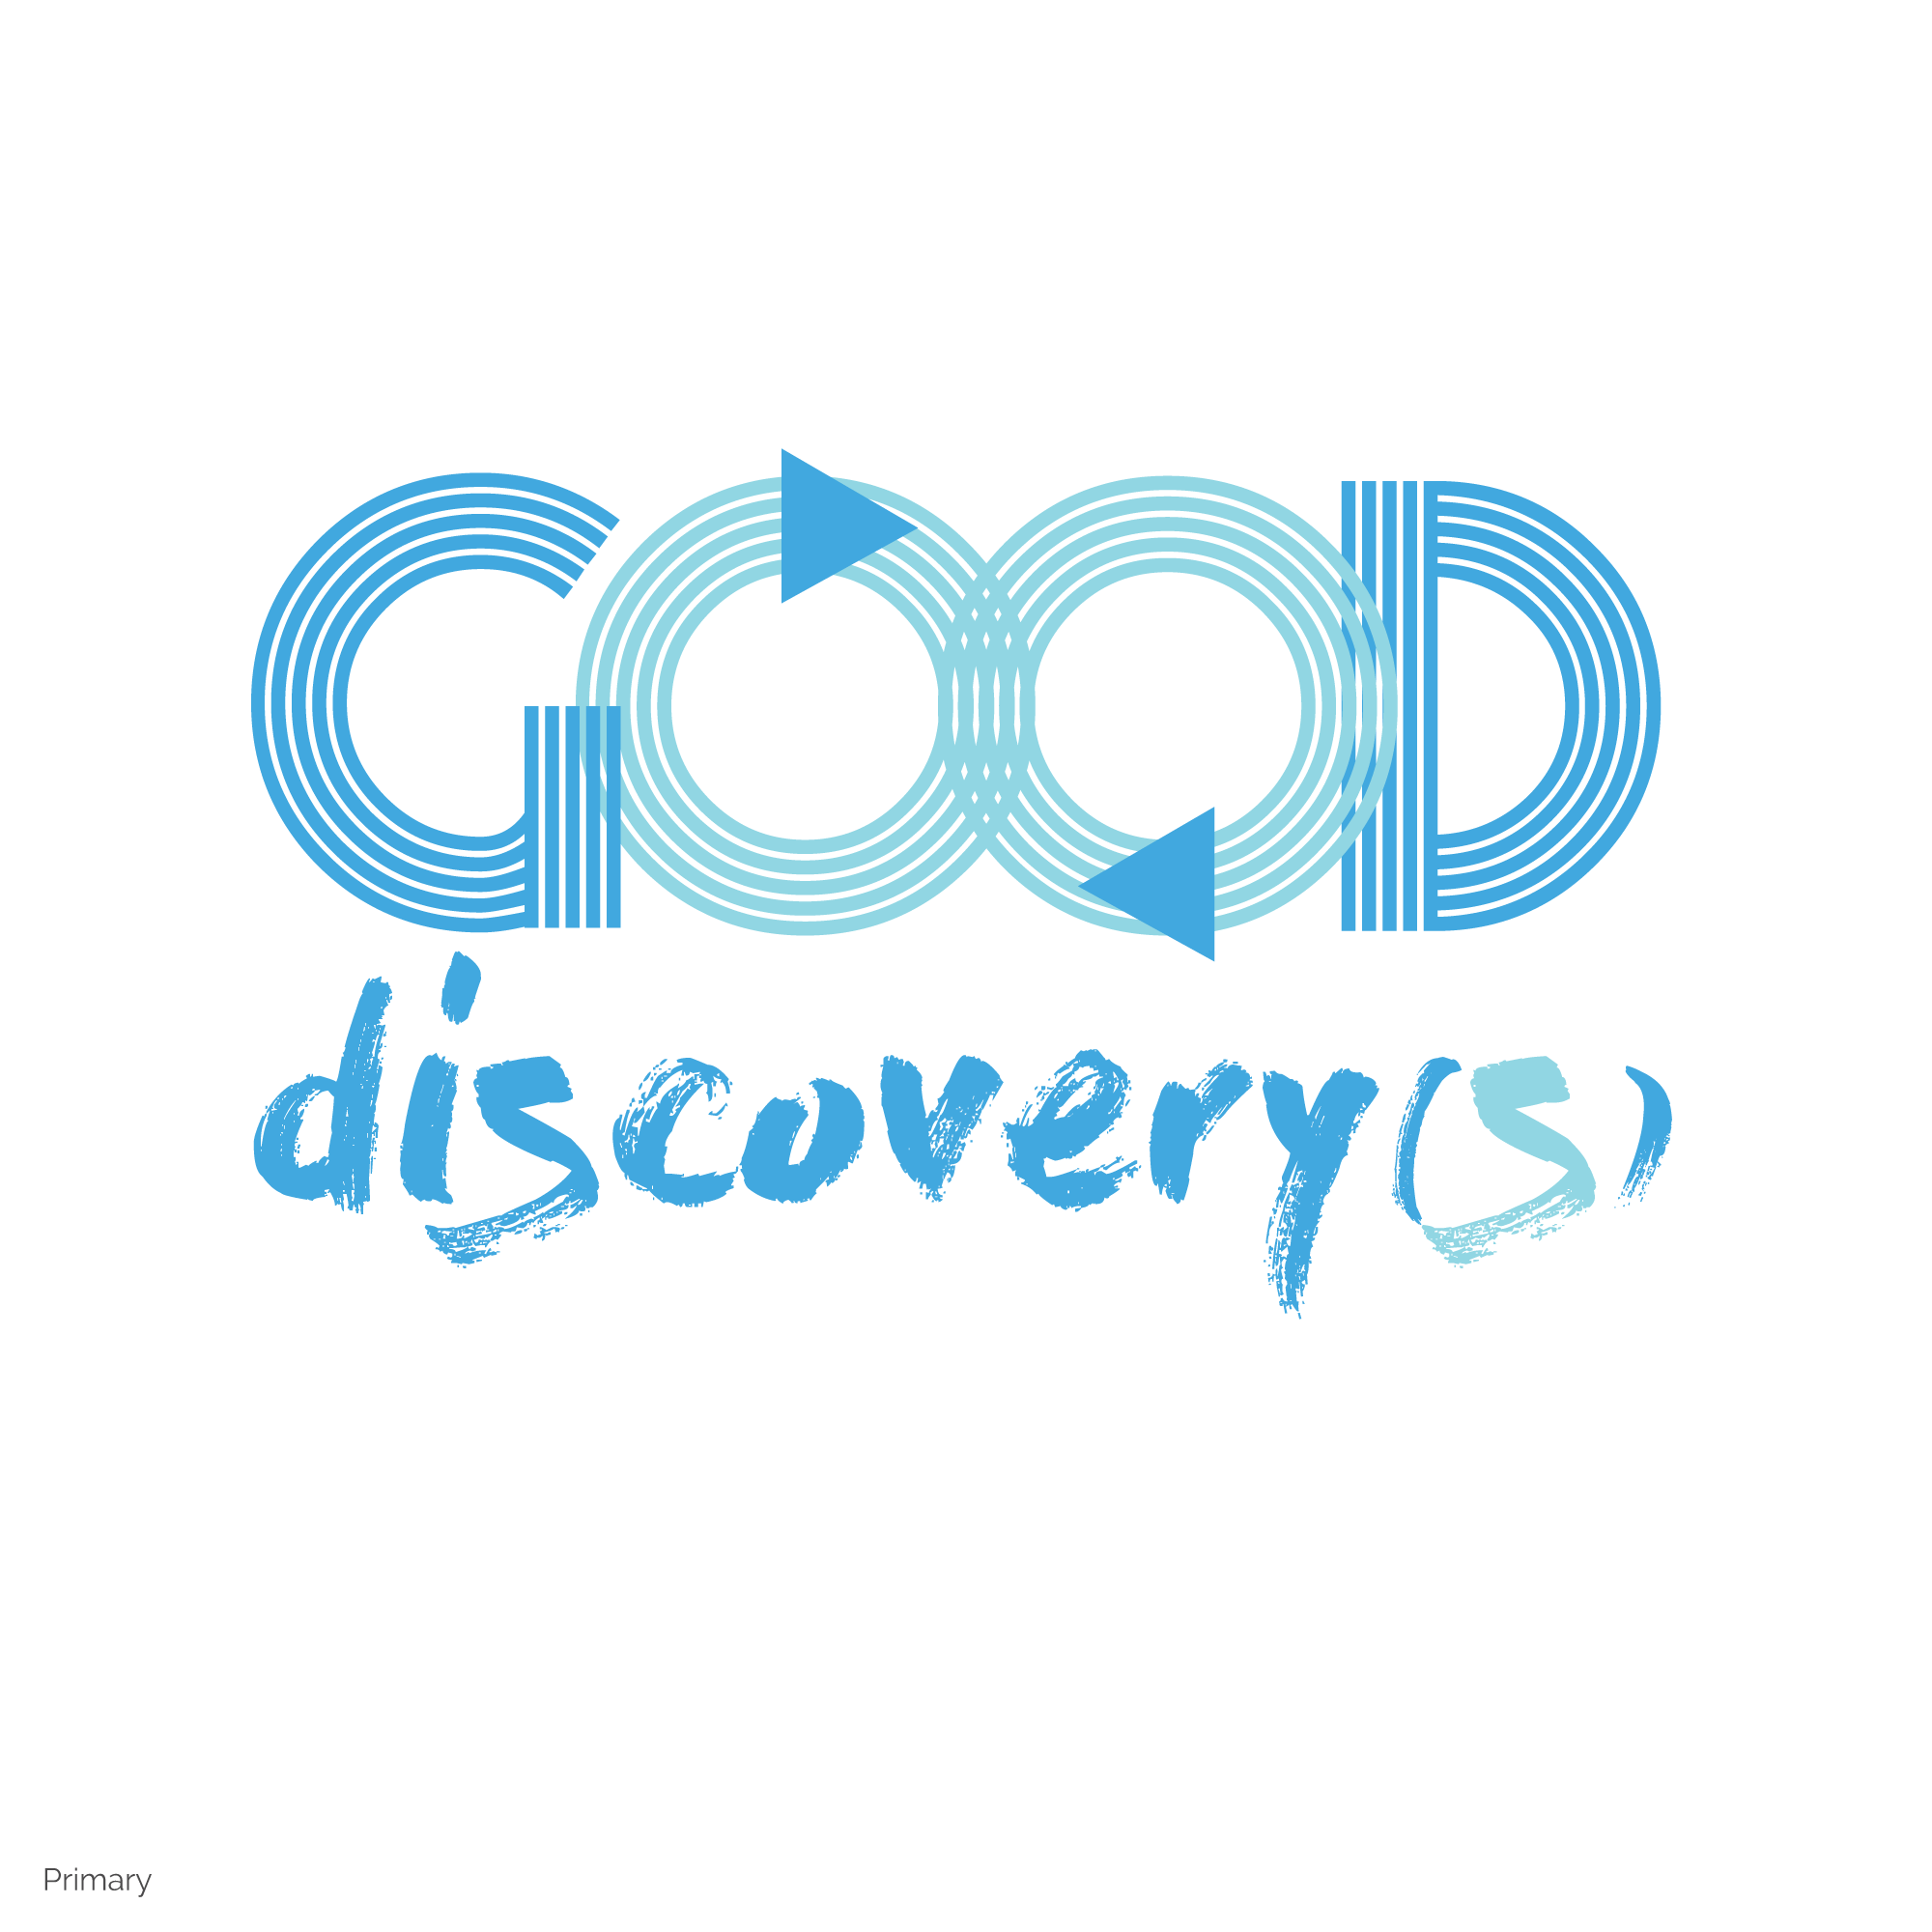 FiR-Creative---Good-Discovery(s)-Primary.png